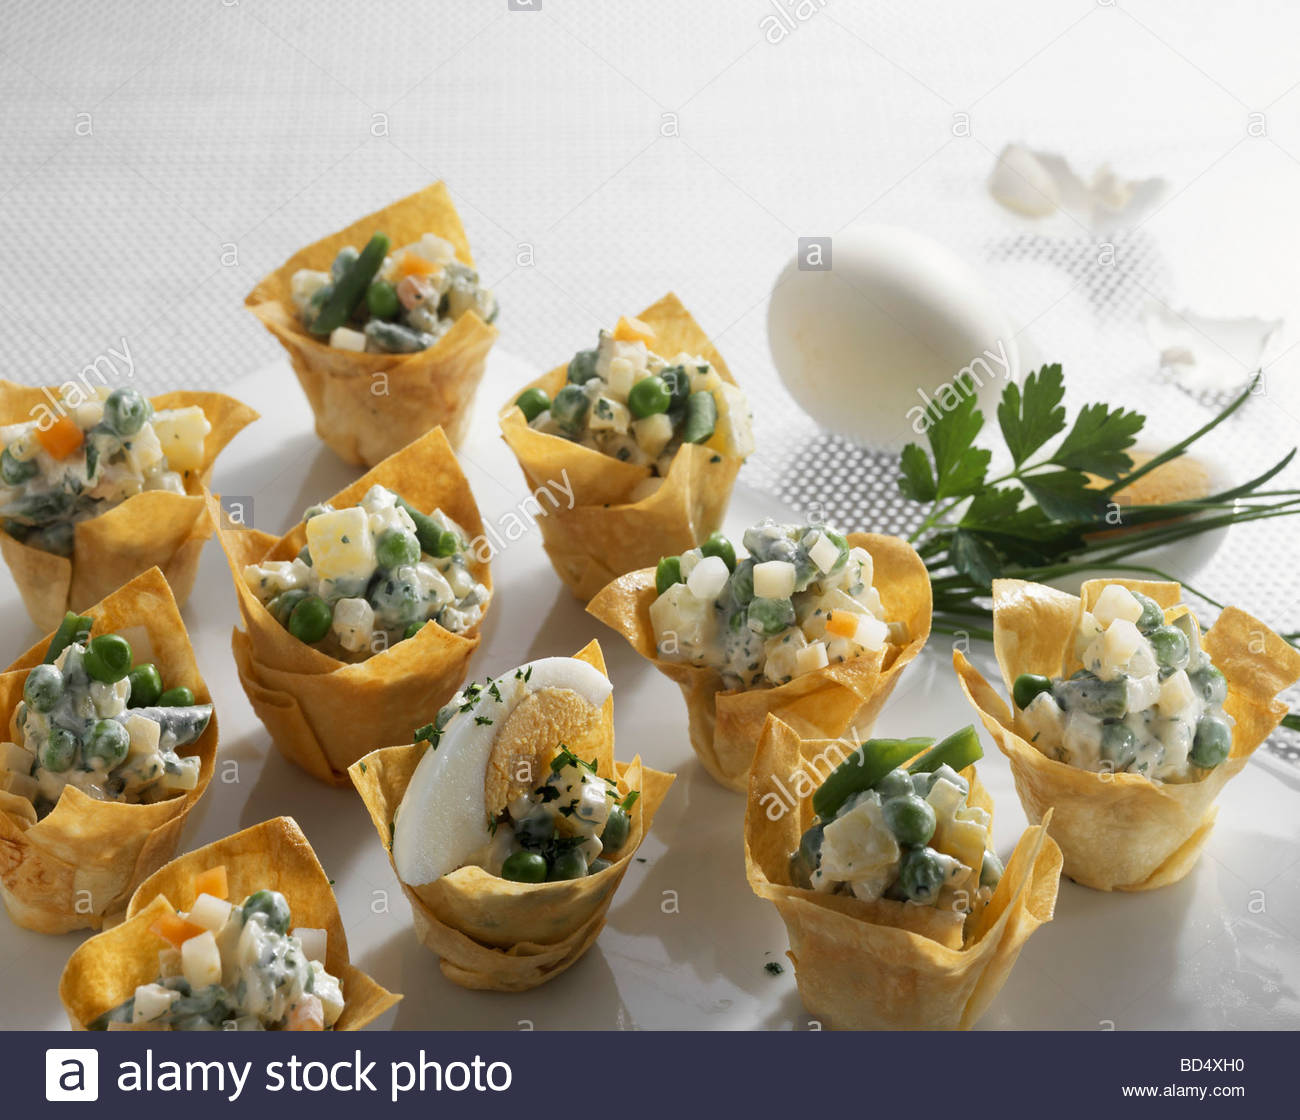 Vegetable salad with boiled egg in filo pastry shells for Canape pastry shells